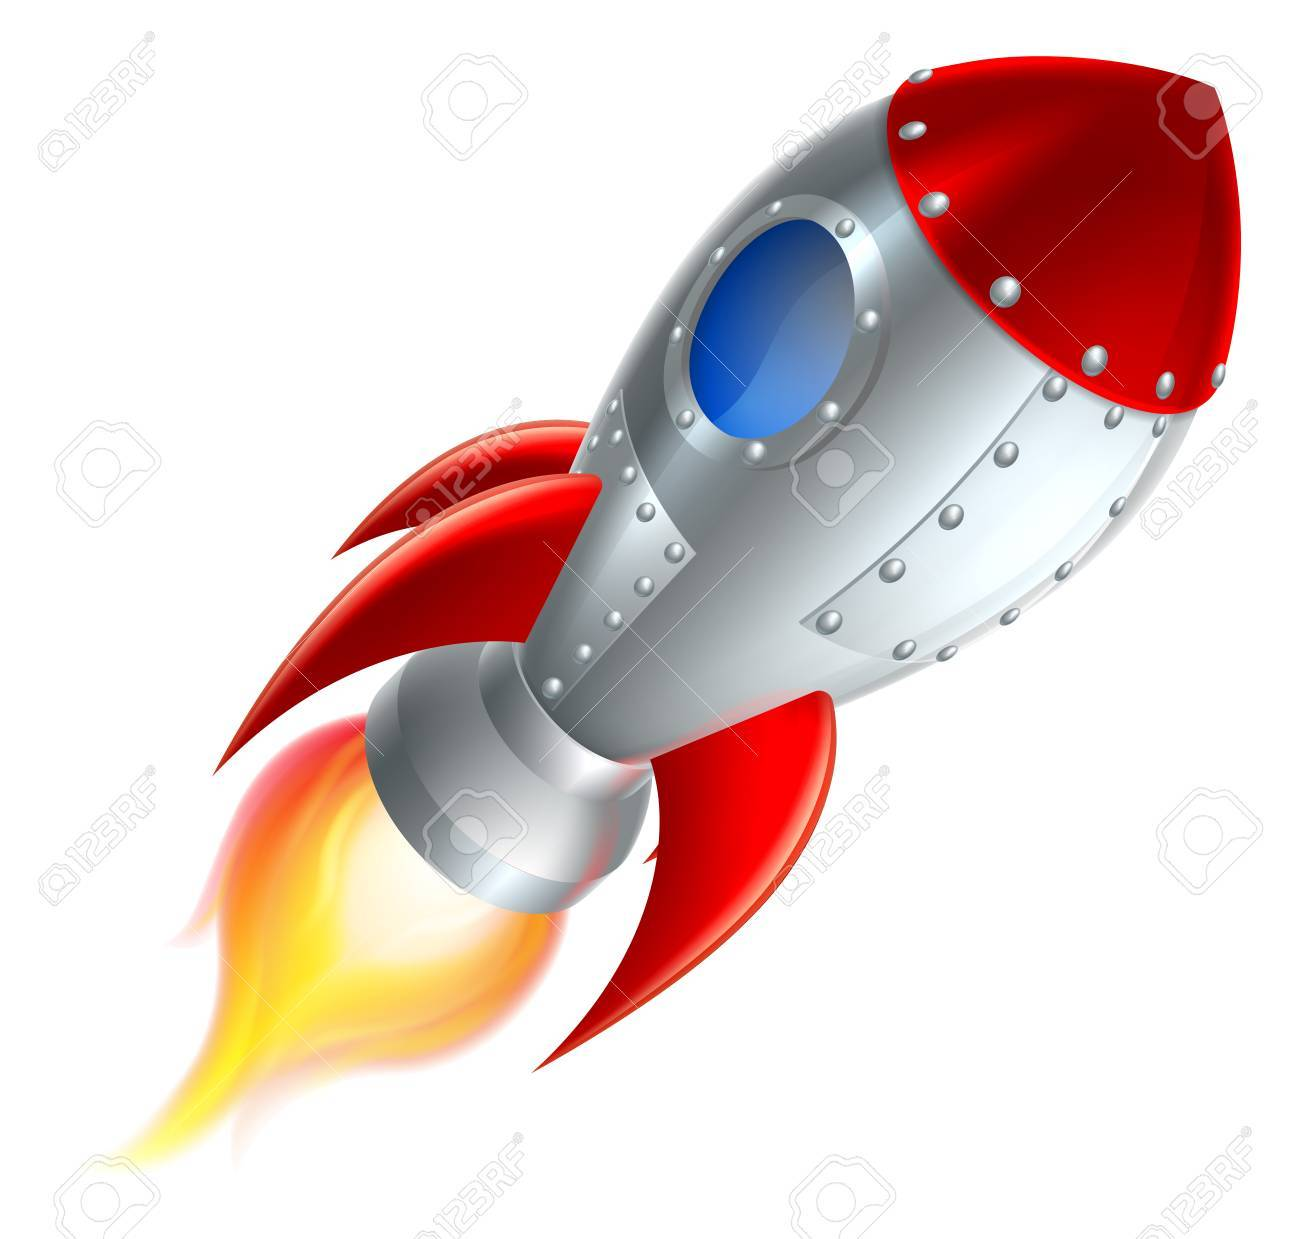 1300x1239 An Illustration Of A Cartoon Space Rocket Ship Or Space Ship